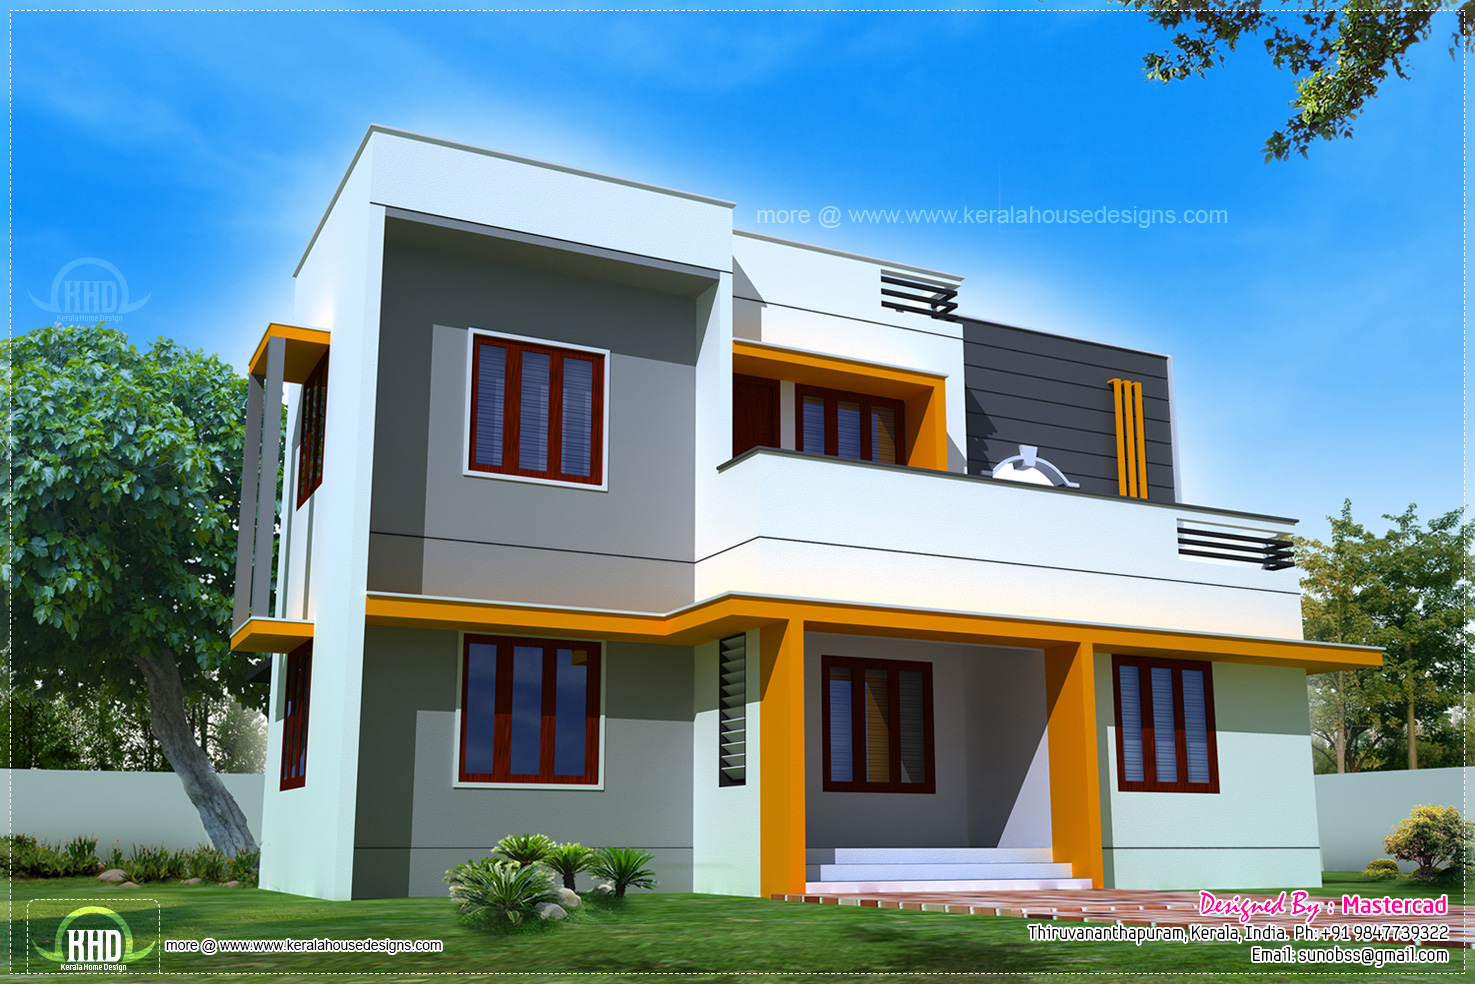 April 2013 kerala home design and floor plans for Modern house plans for 1600 sq ft